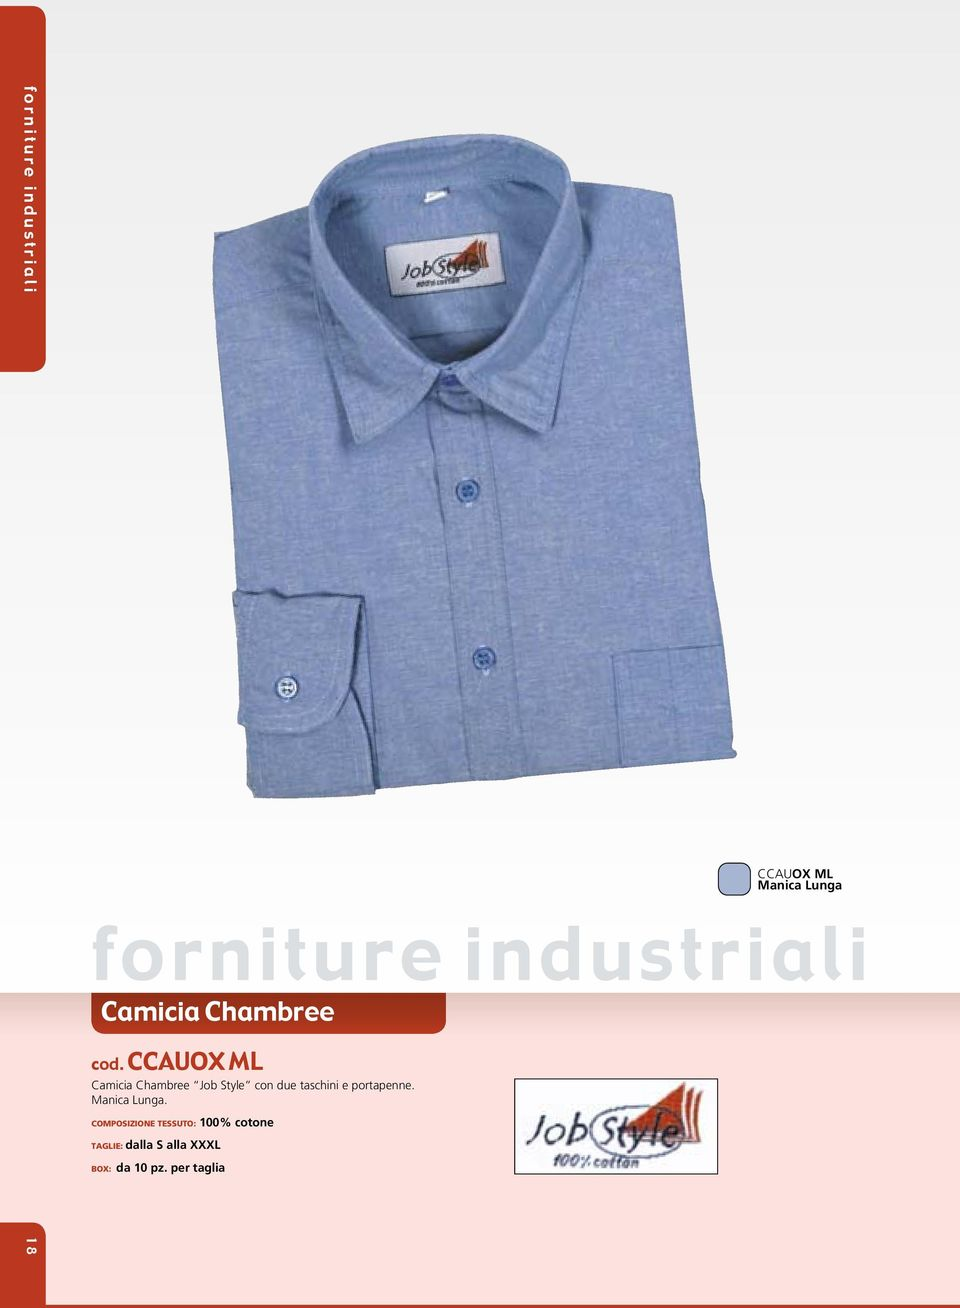 CCauOx Ml Camicia Chambree Job Style con due taschini e